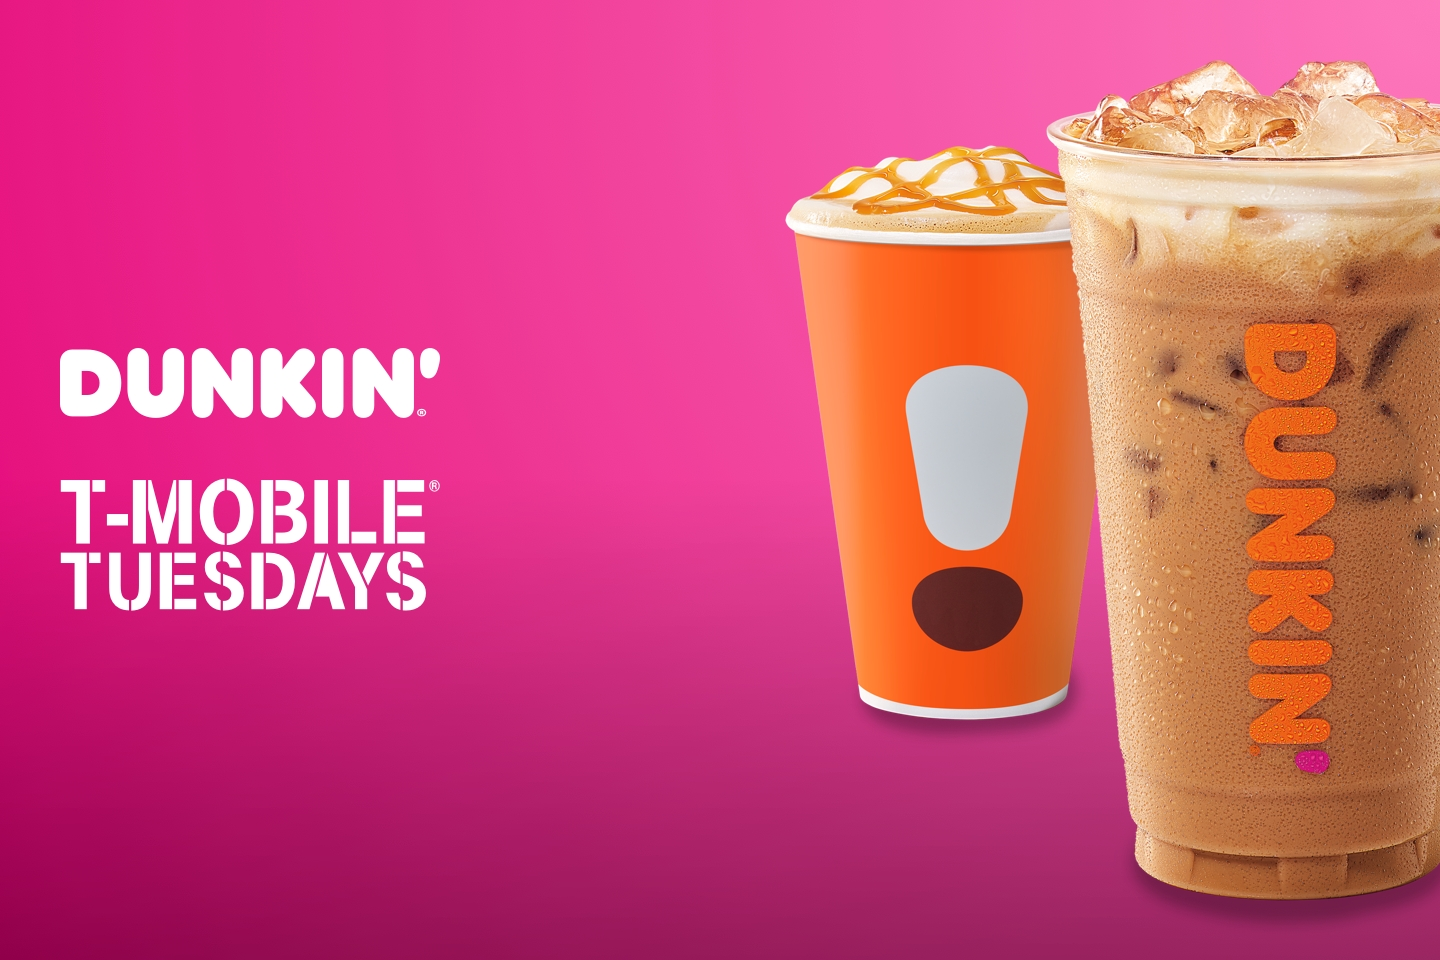 Tackle Tuesdays with a Free Latte from Dunkin' and T-Mobile